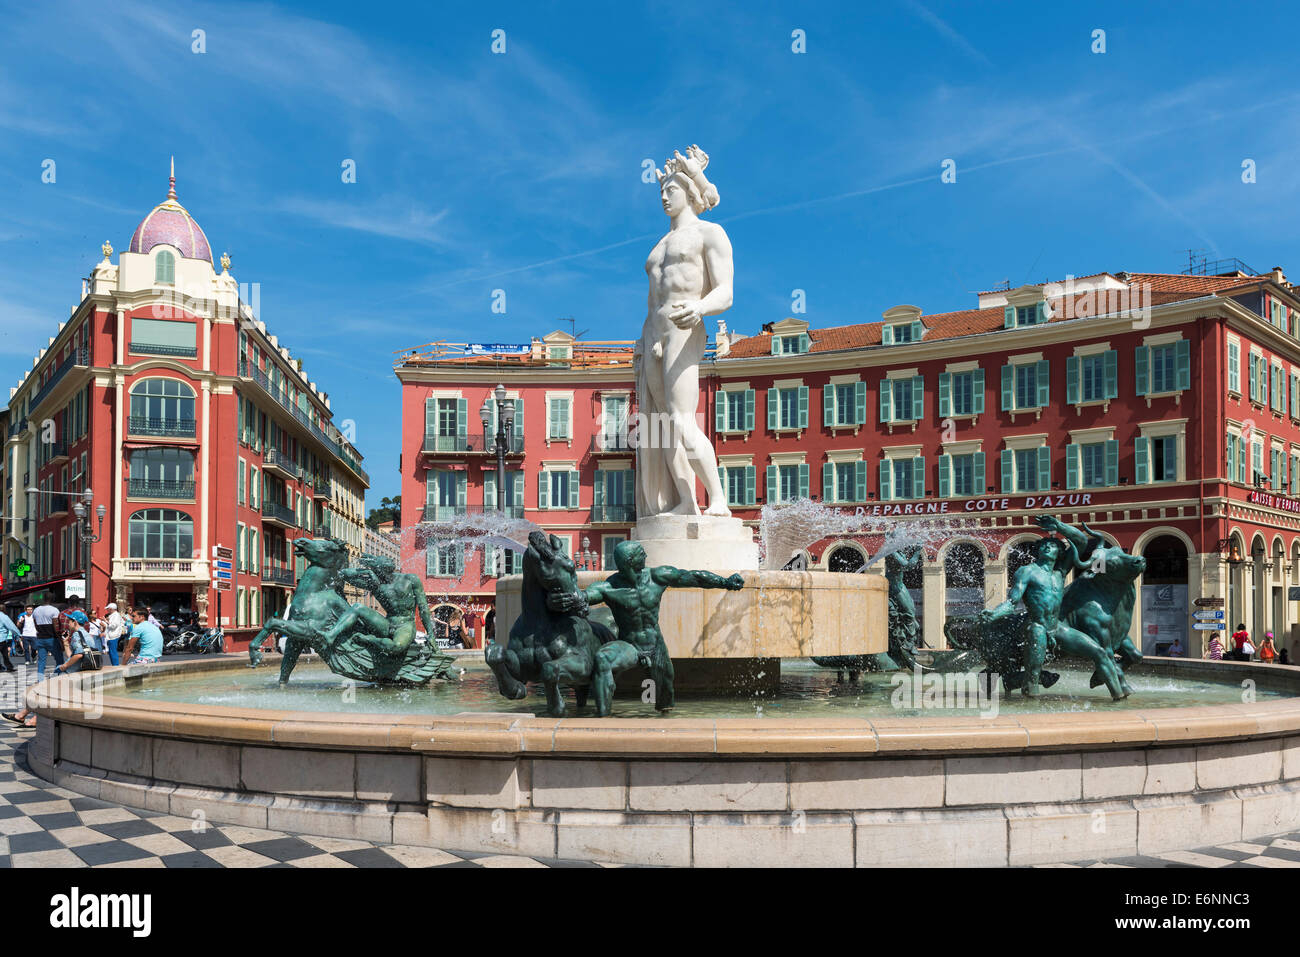 Fontaine du soleil fountain and statue of apollo in place massena stock photo royalty free - Place massena nice ...